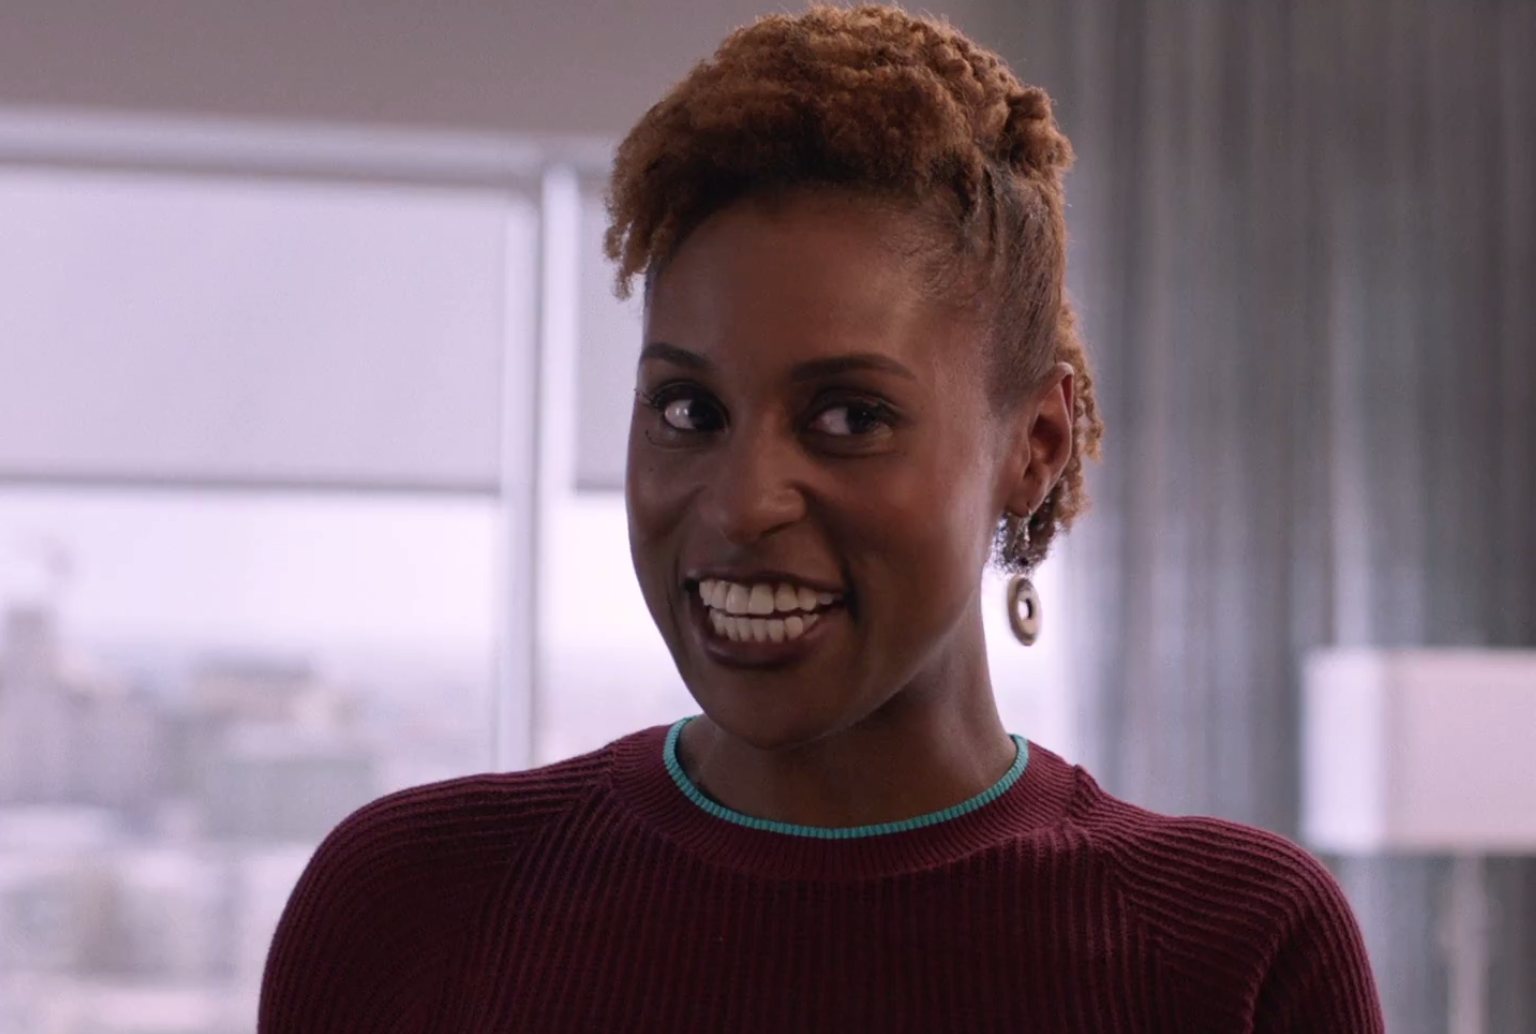 Natural hairstyle worn by Issa Rae Insecure Hella LA